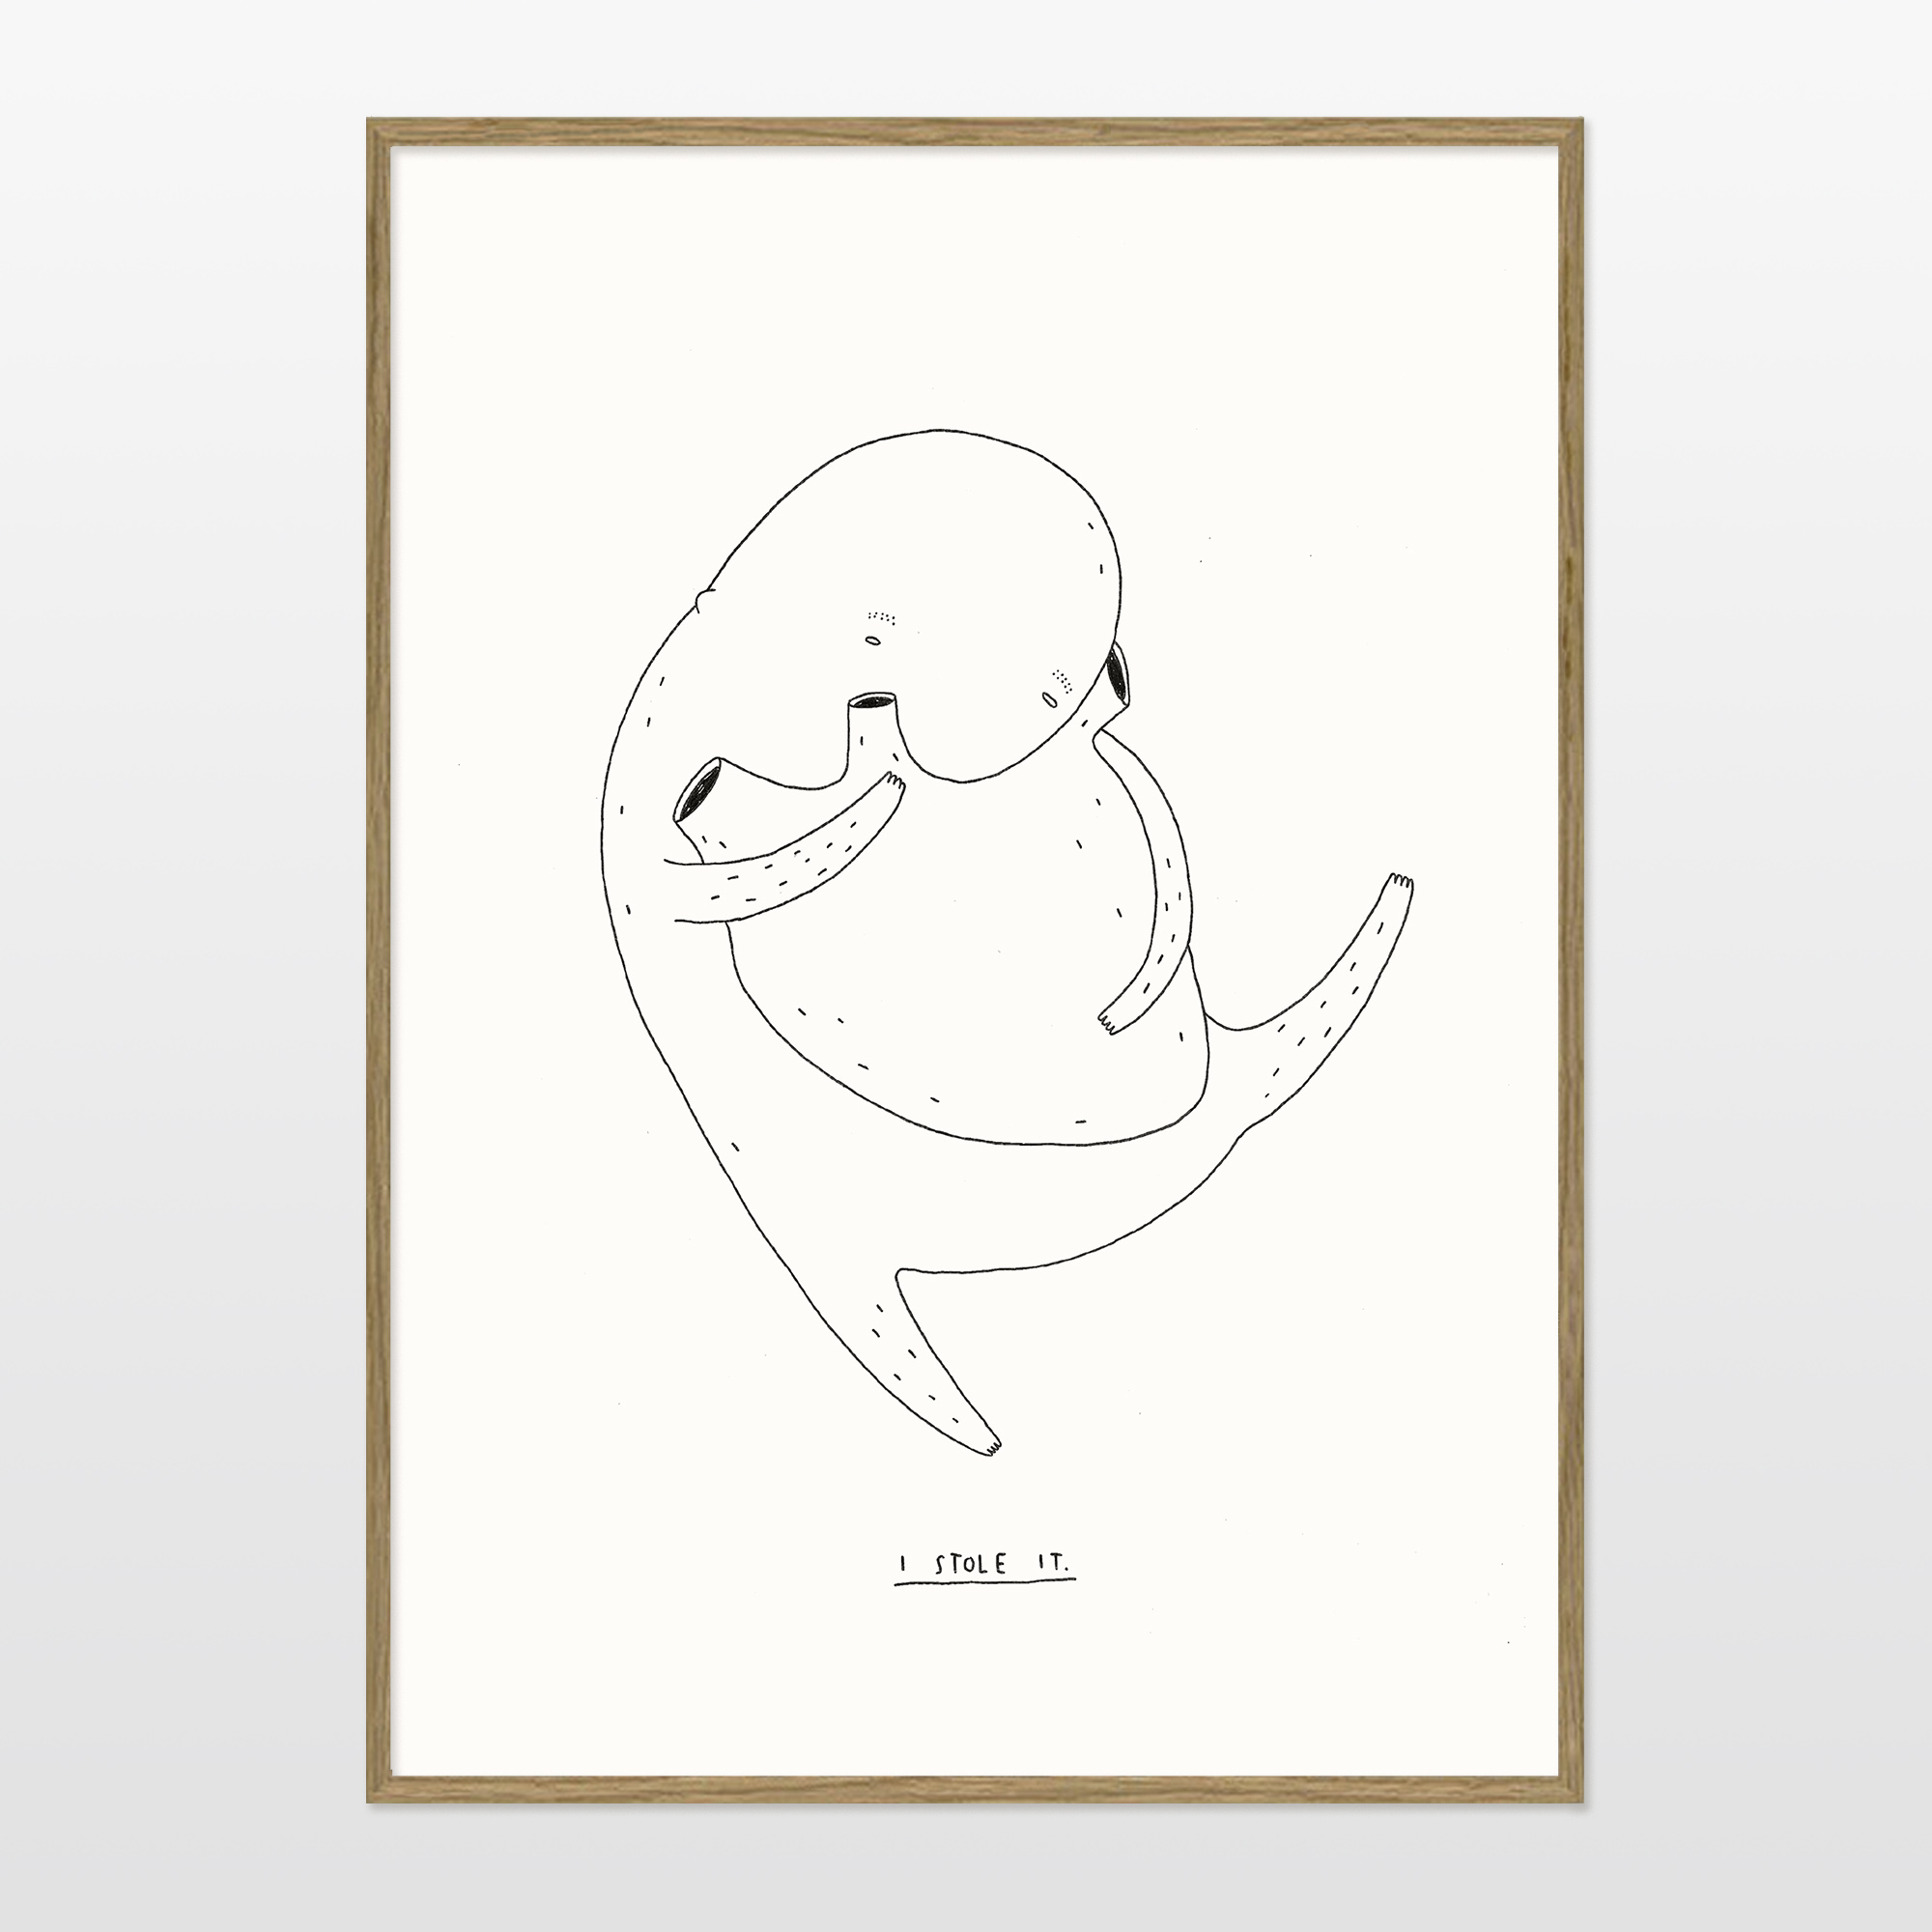 posters-prints, giclee-print, family-friendly, figurative, illustrative, minimalistic, cartoons, children, moods, people, black, white, paper, amusing, cute, danish, decorative, design, interior, interior-design, nordic, posters, prints, scandinavien, Buy original high quality art. Paintings, drawings, limited edition prints & posters by talented artists.